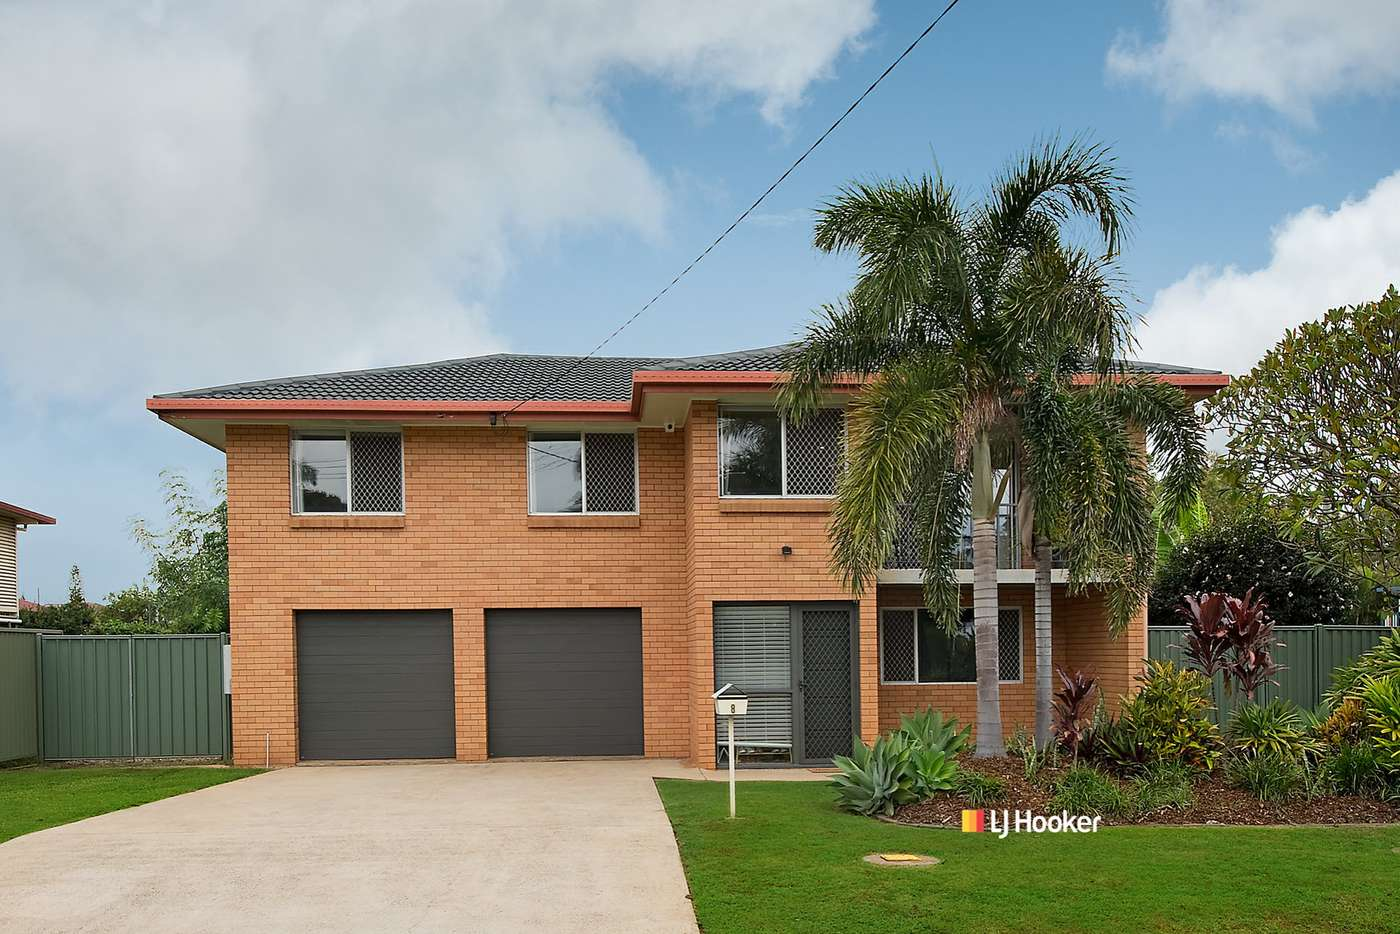 Main view of Homely house listing, 8 Able Street, Kallangur QLD 4503